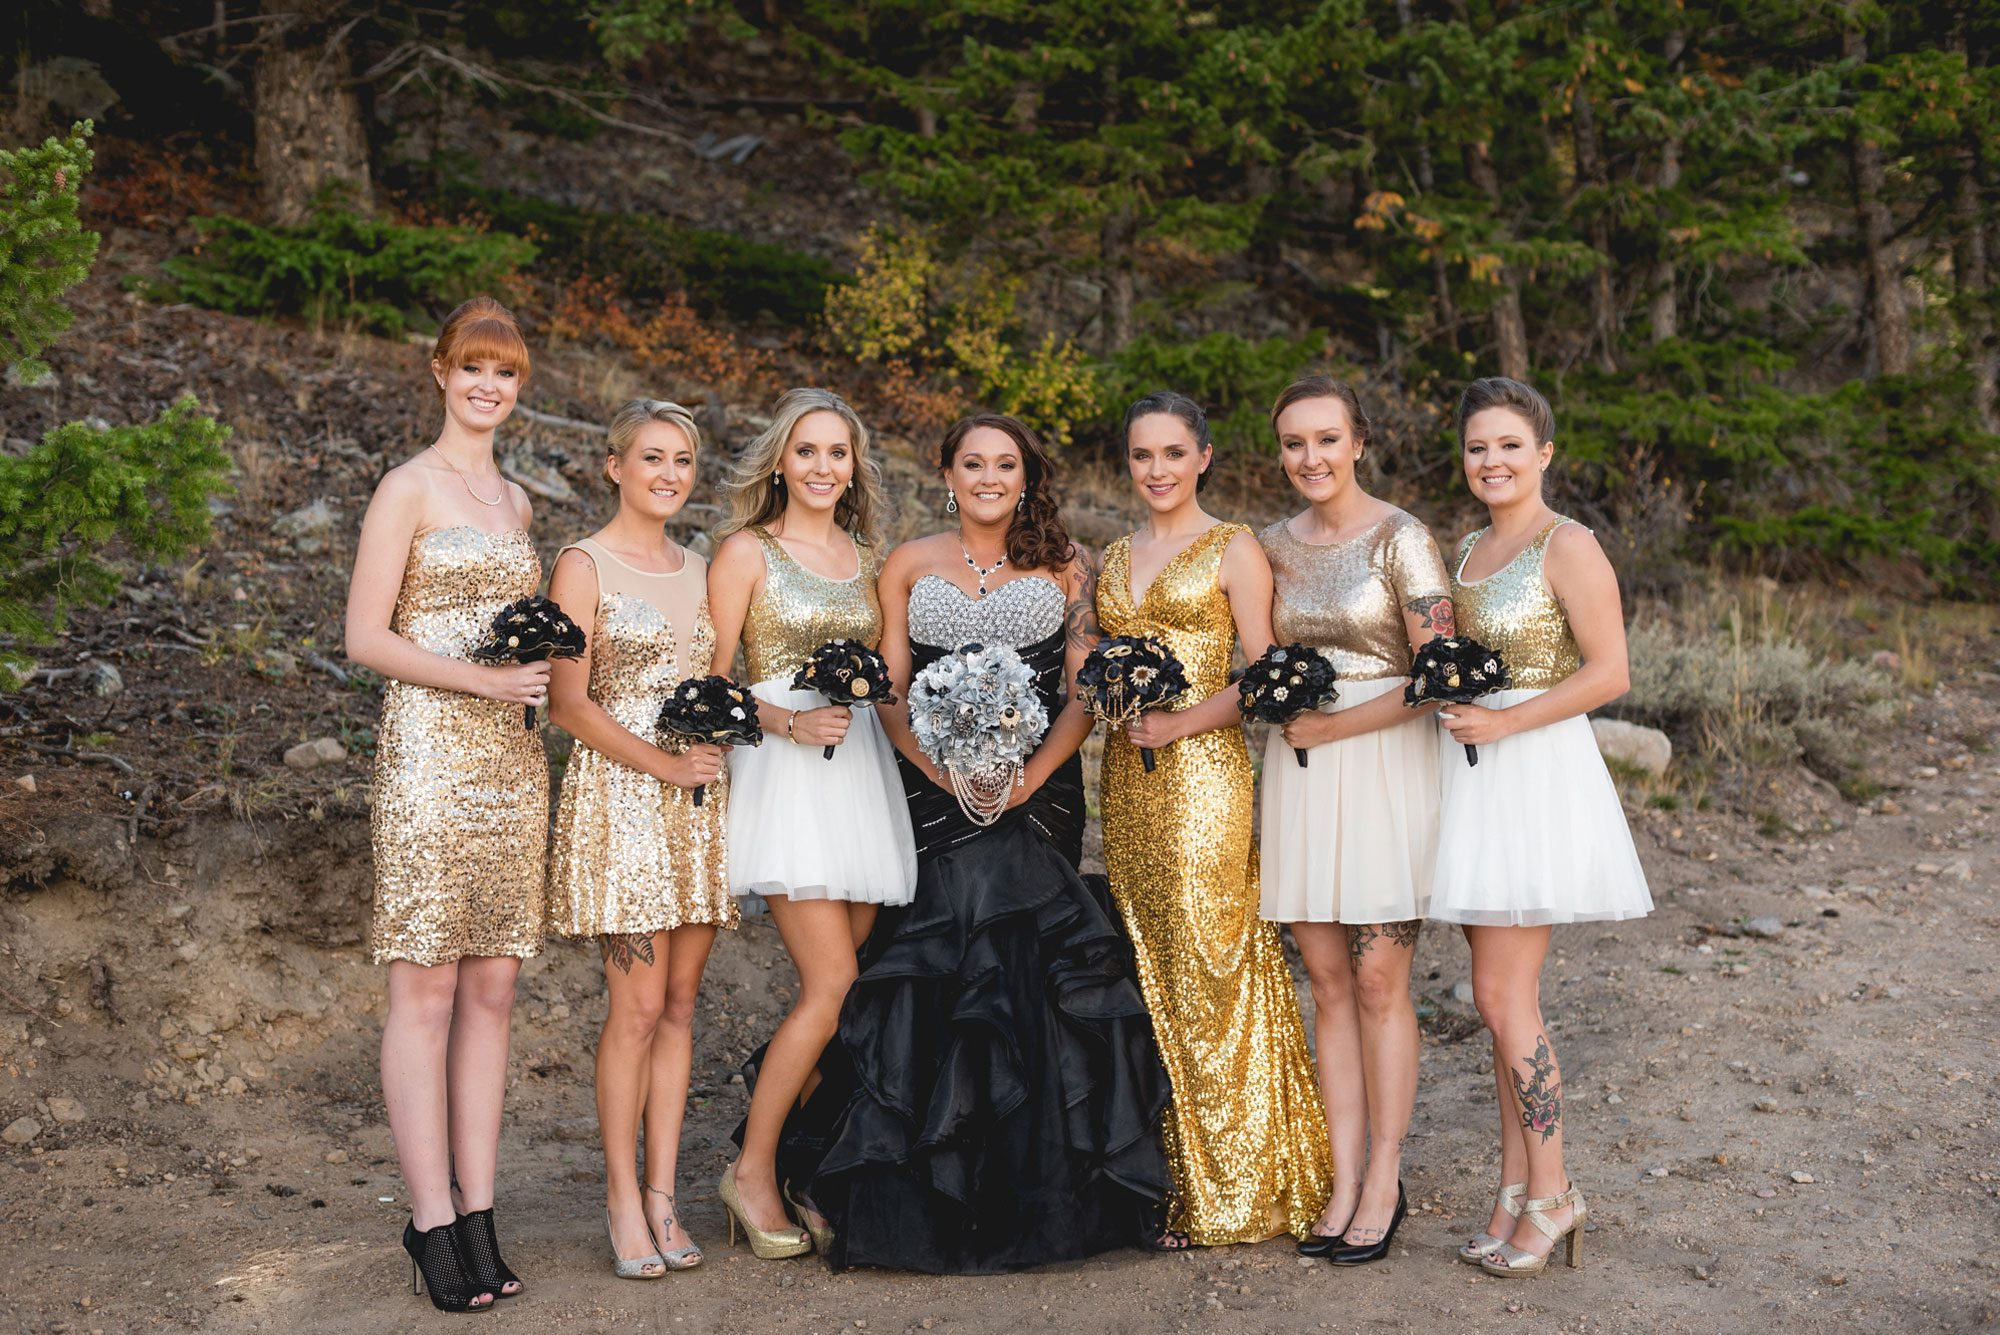 A Fall Mountain Wedding with Black & Gold Accents